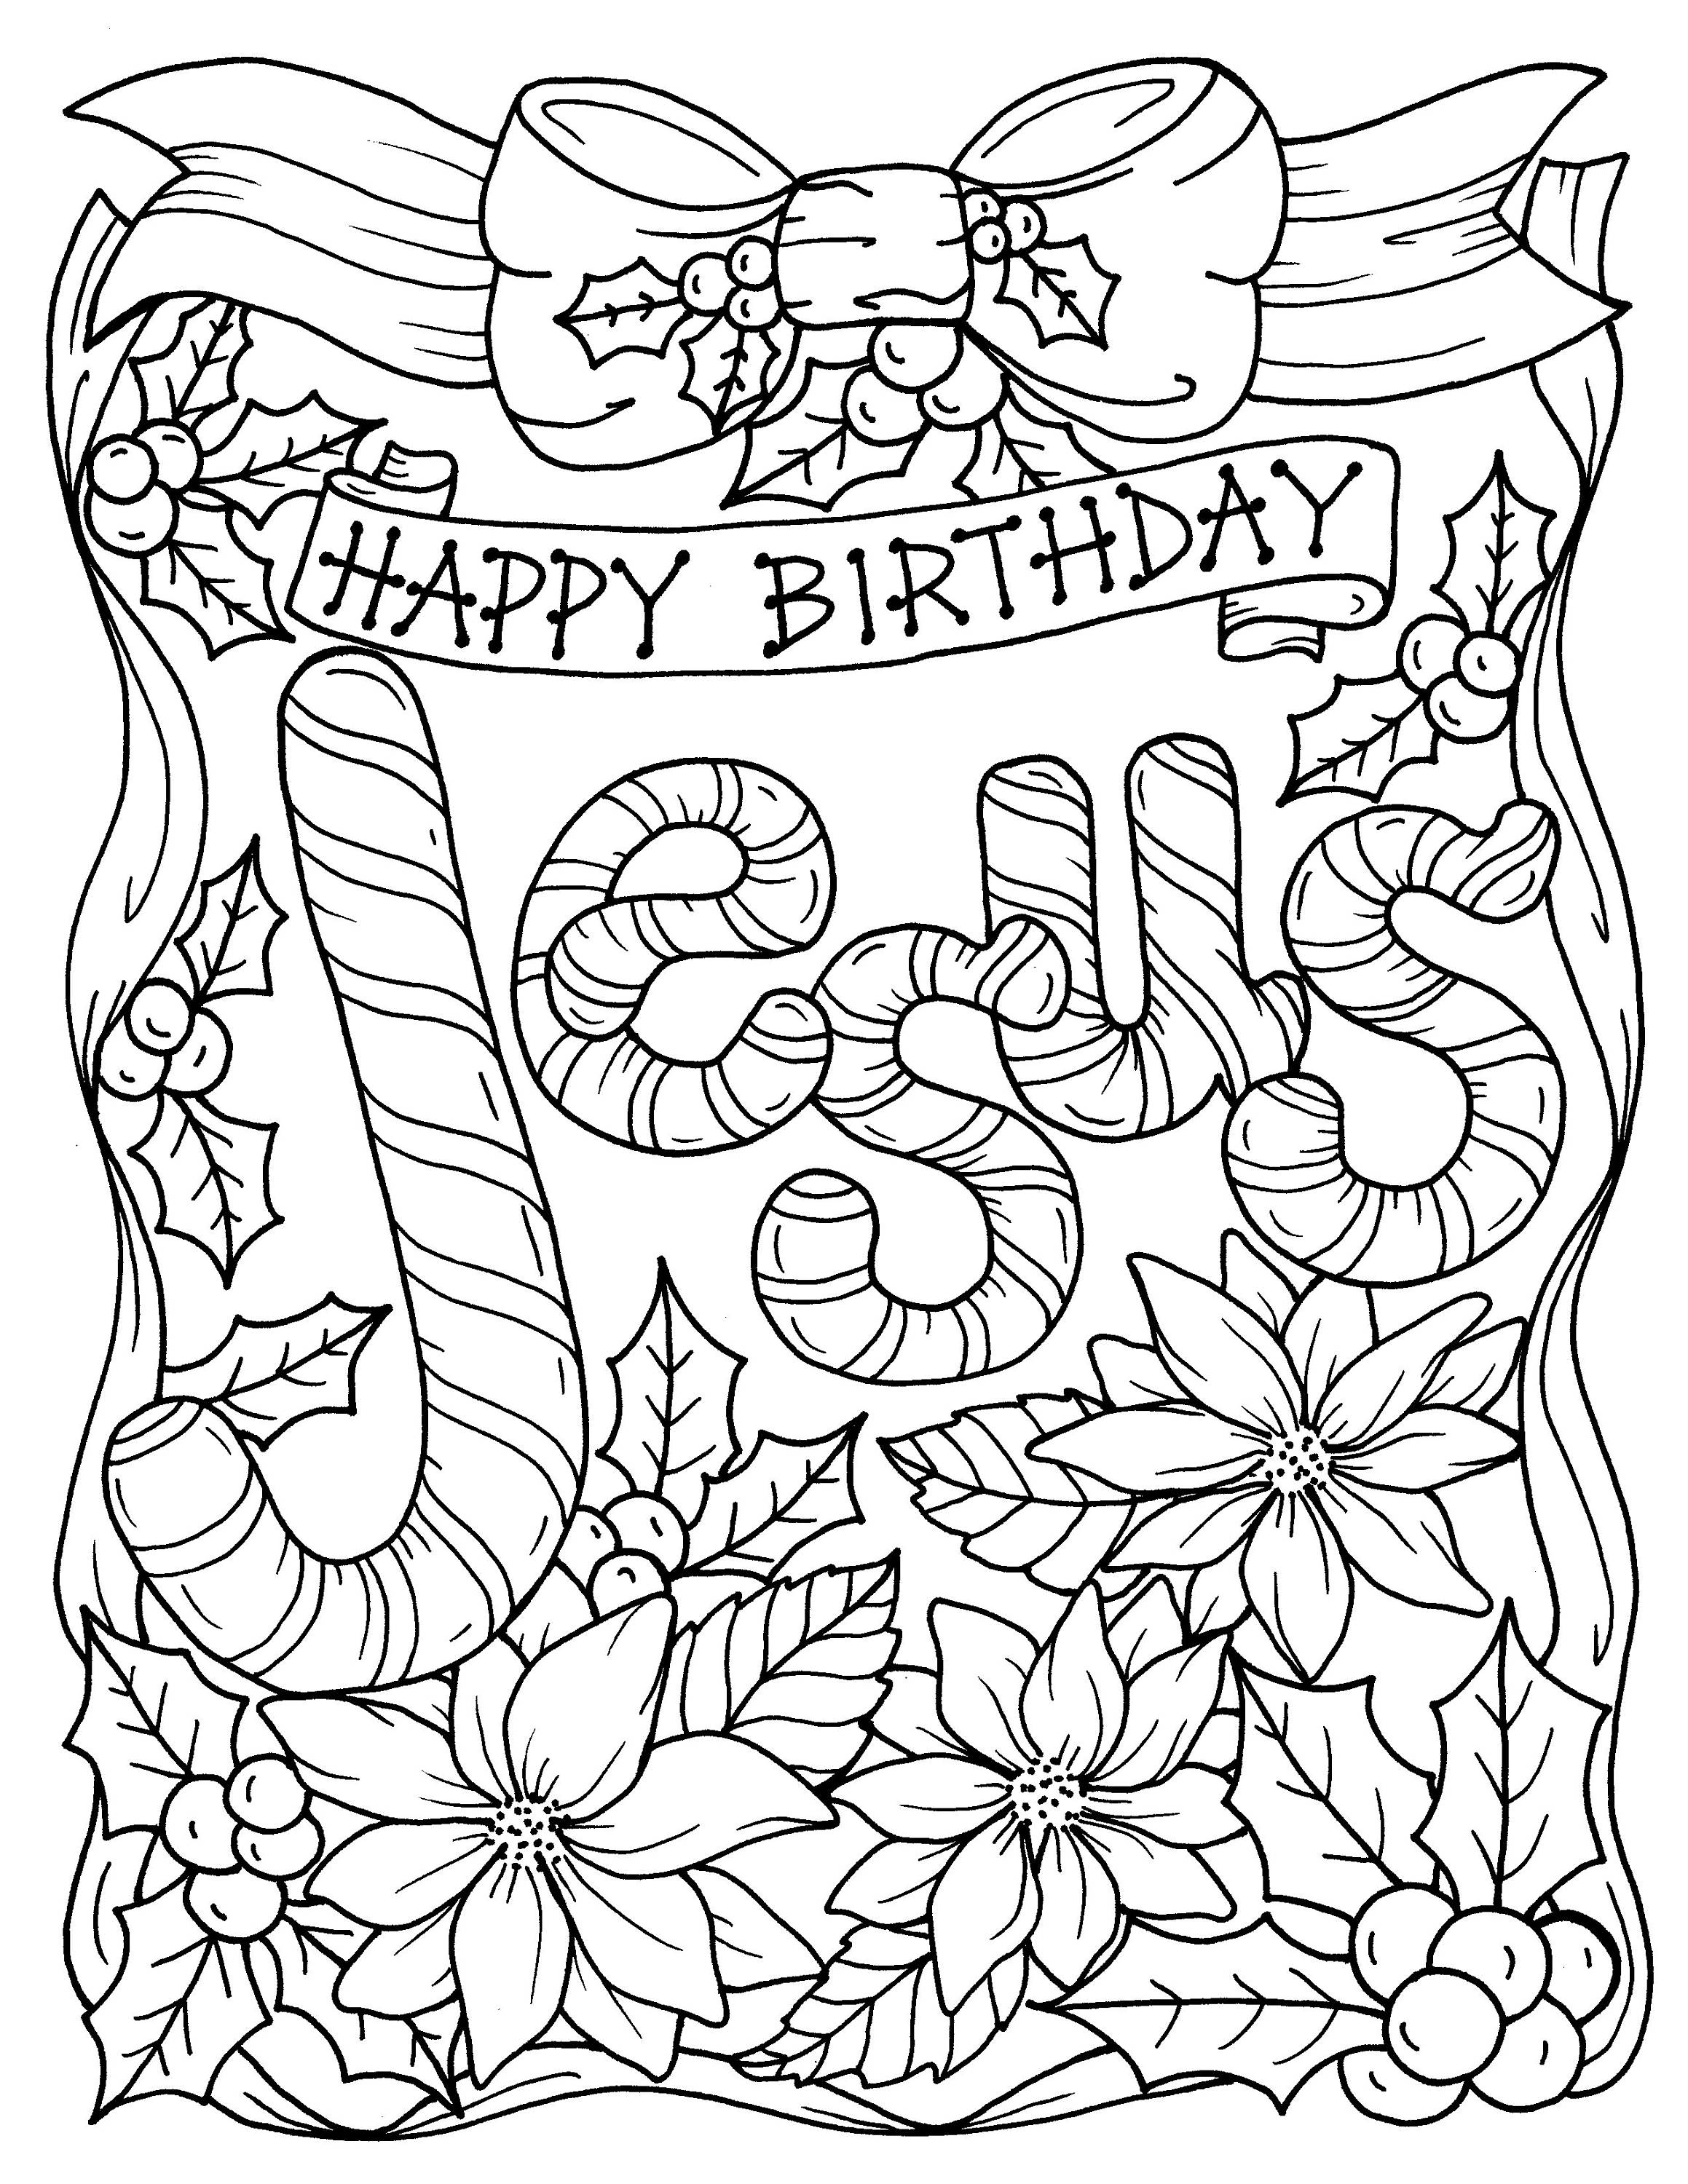 free christian christmas coloring pages melonheadz freebies christmas christmas pages coloring free christian